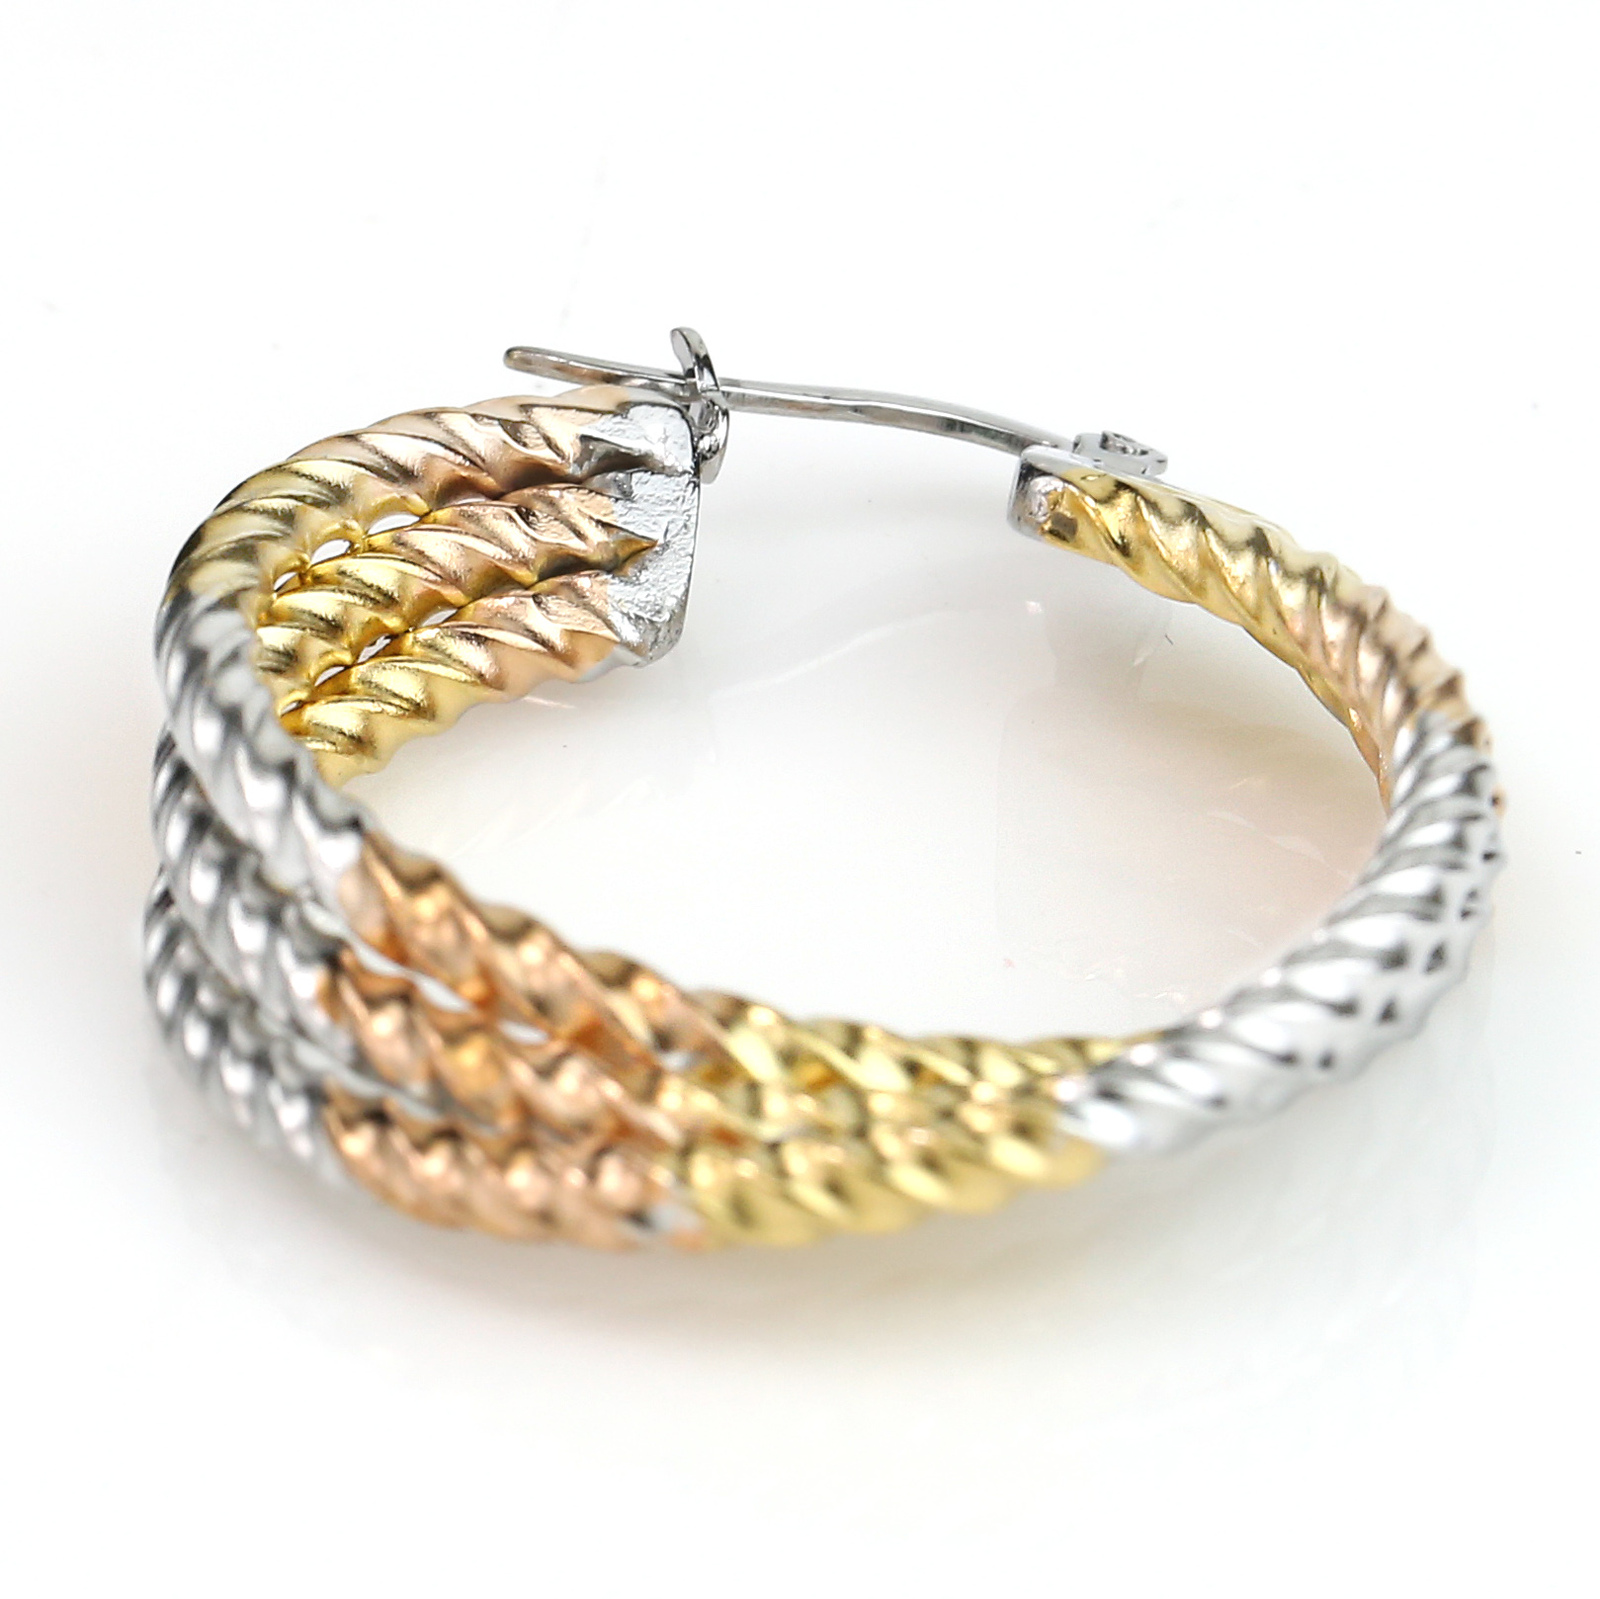 Contemporary Twisted Tri-Color Silver, Gold Hoop Earrings- United Elegance image 3